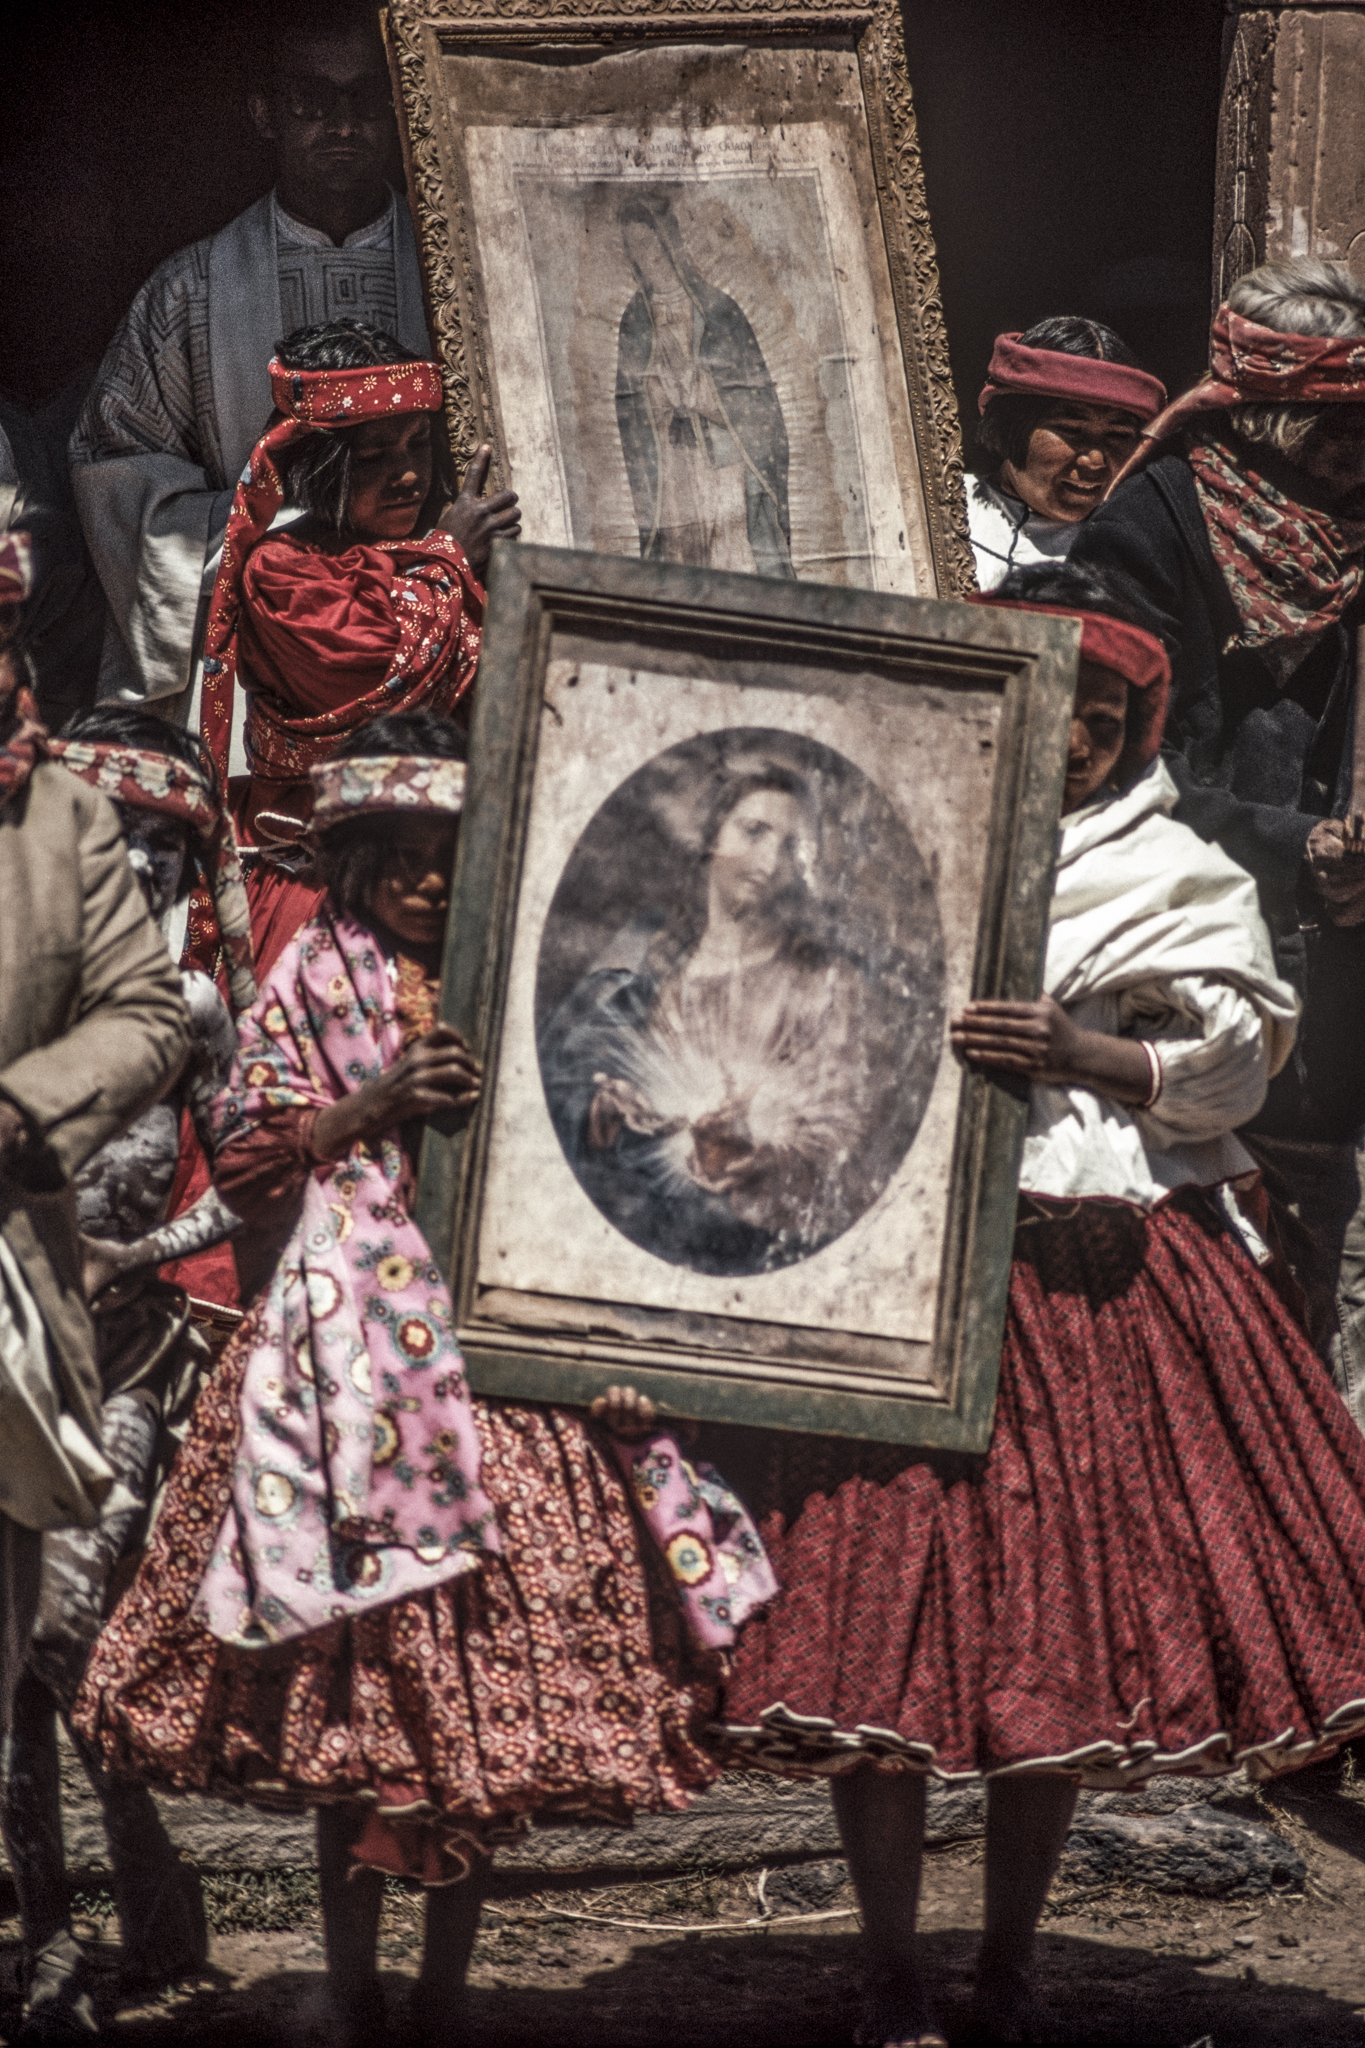 Holy week, procession with religious images